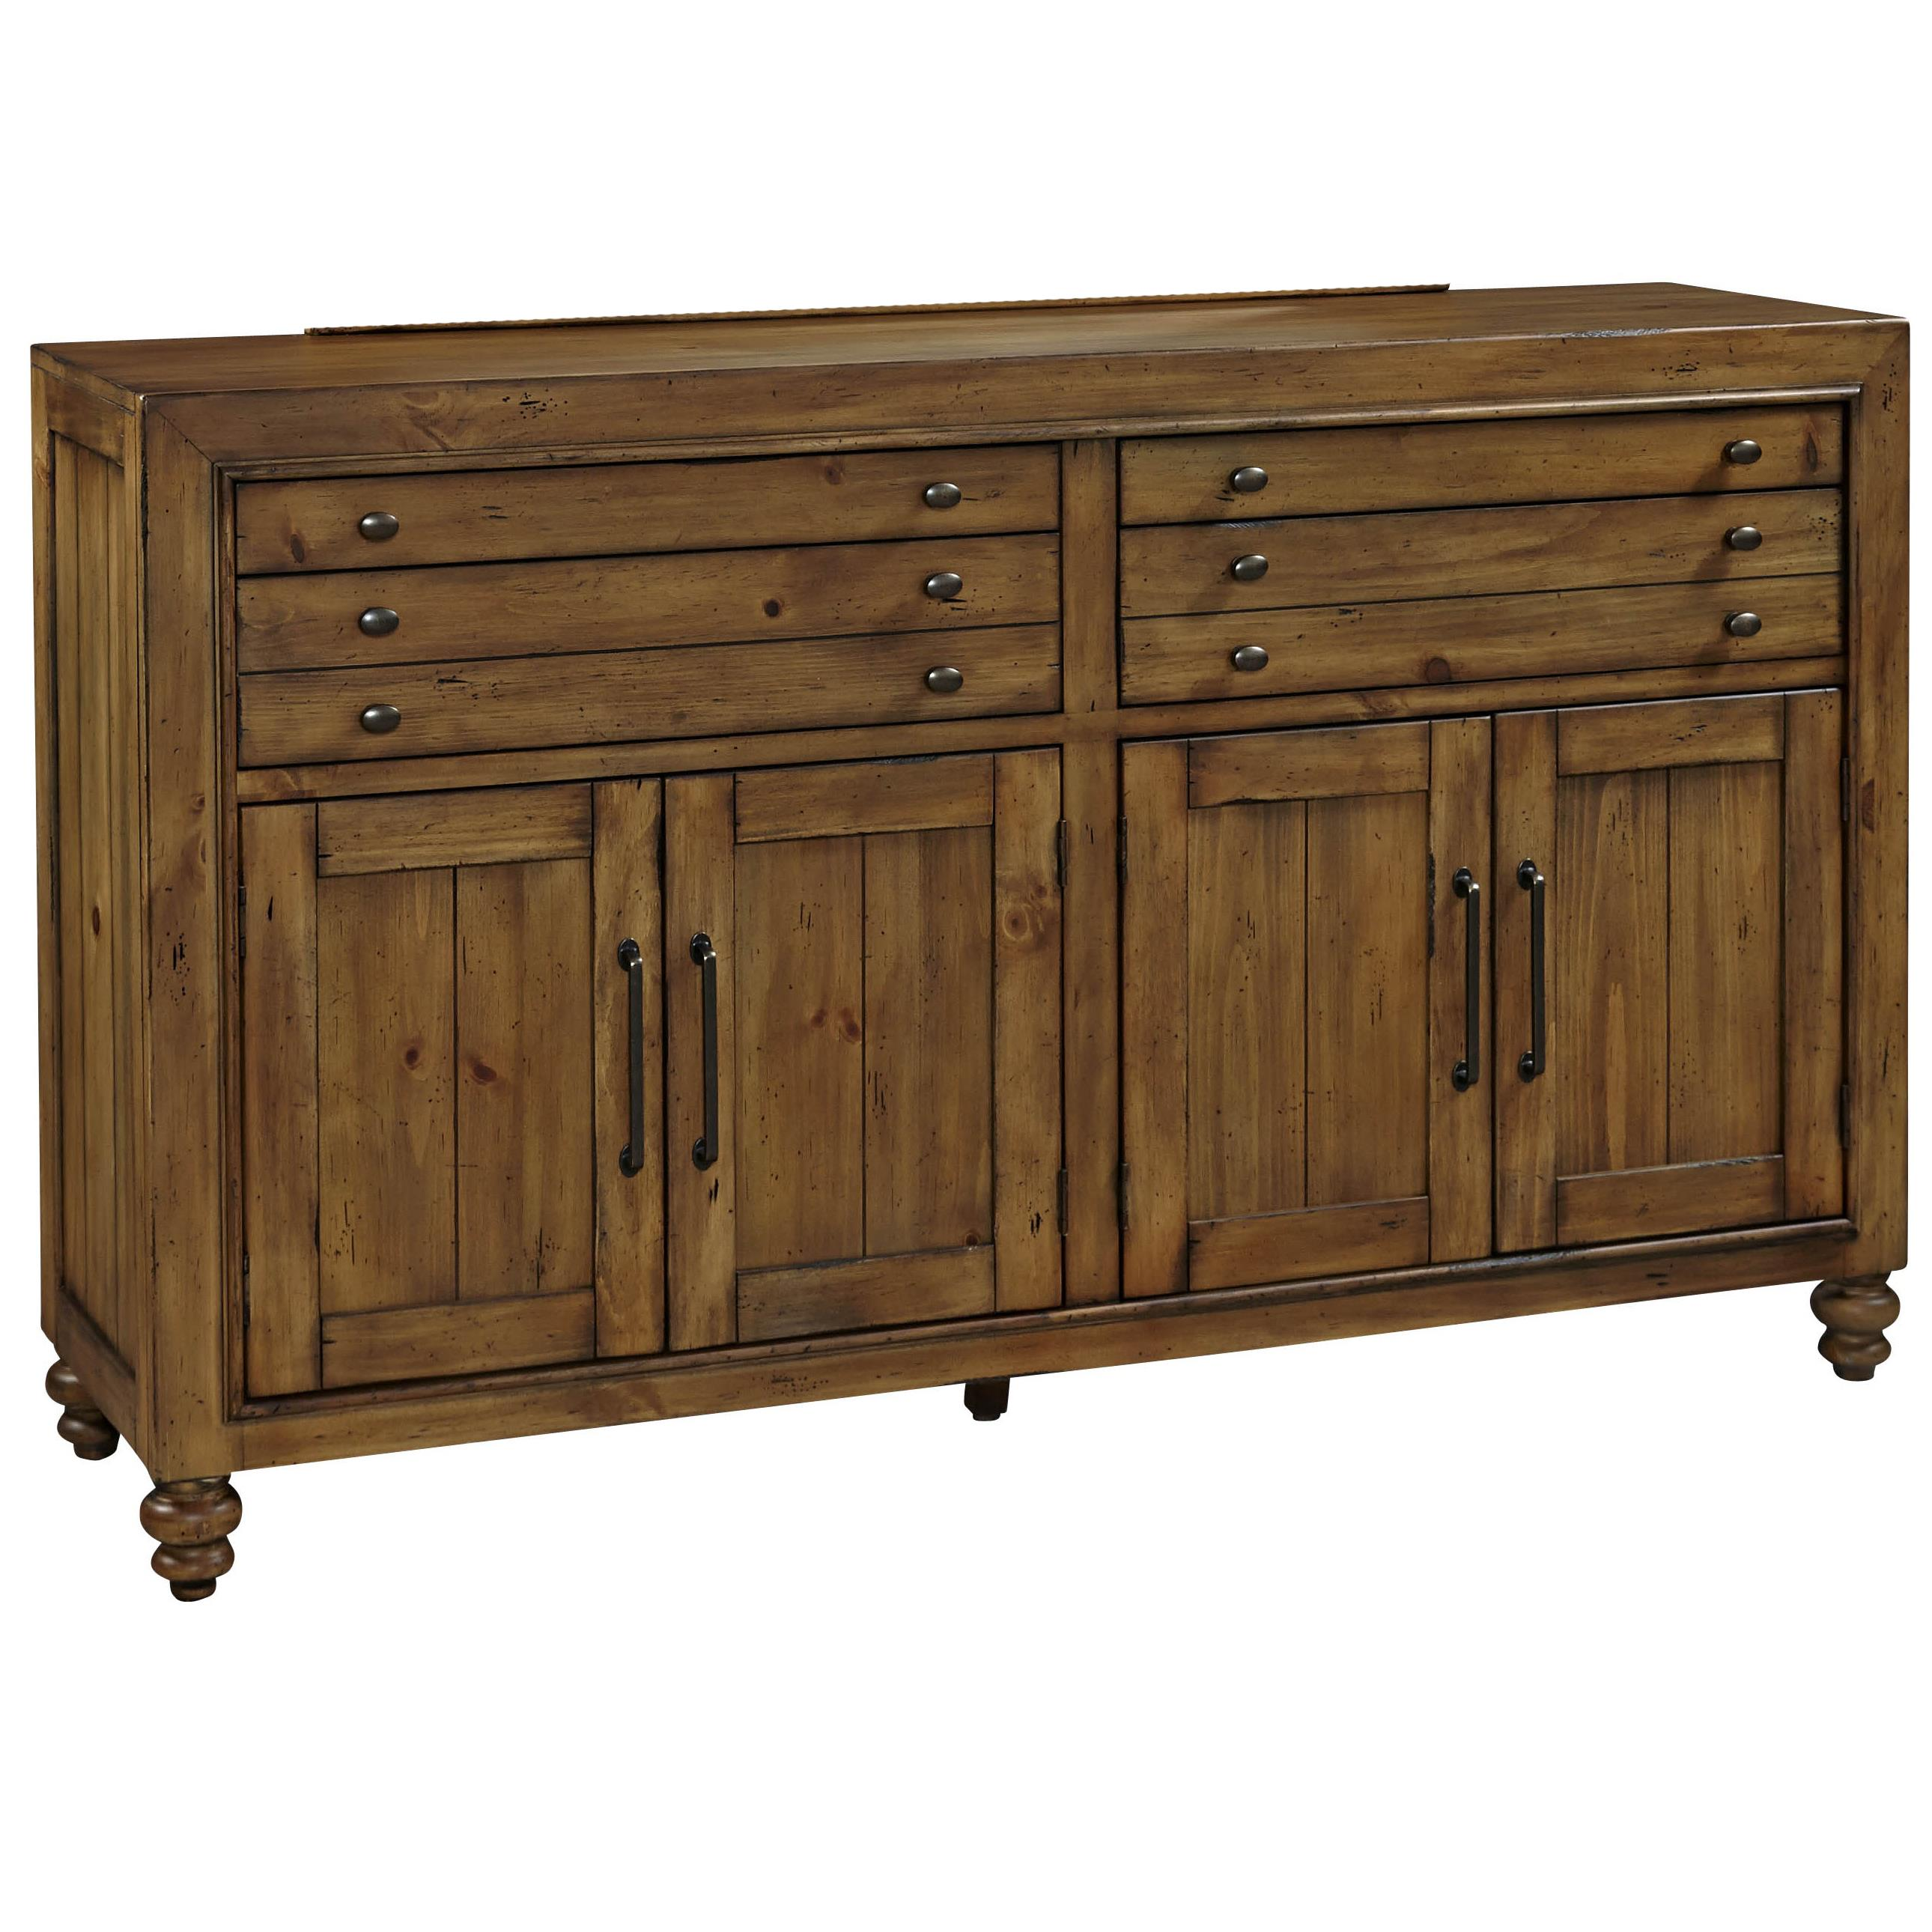 Broyhill Furniture Bethany Square Door Dresser - Item Number: 4930-232